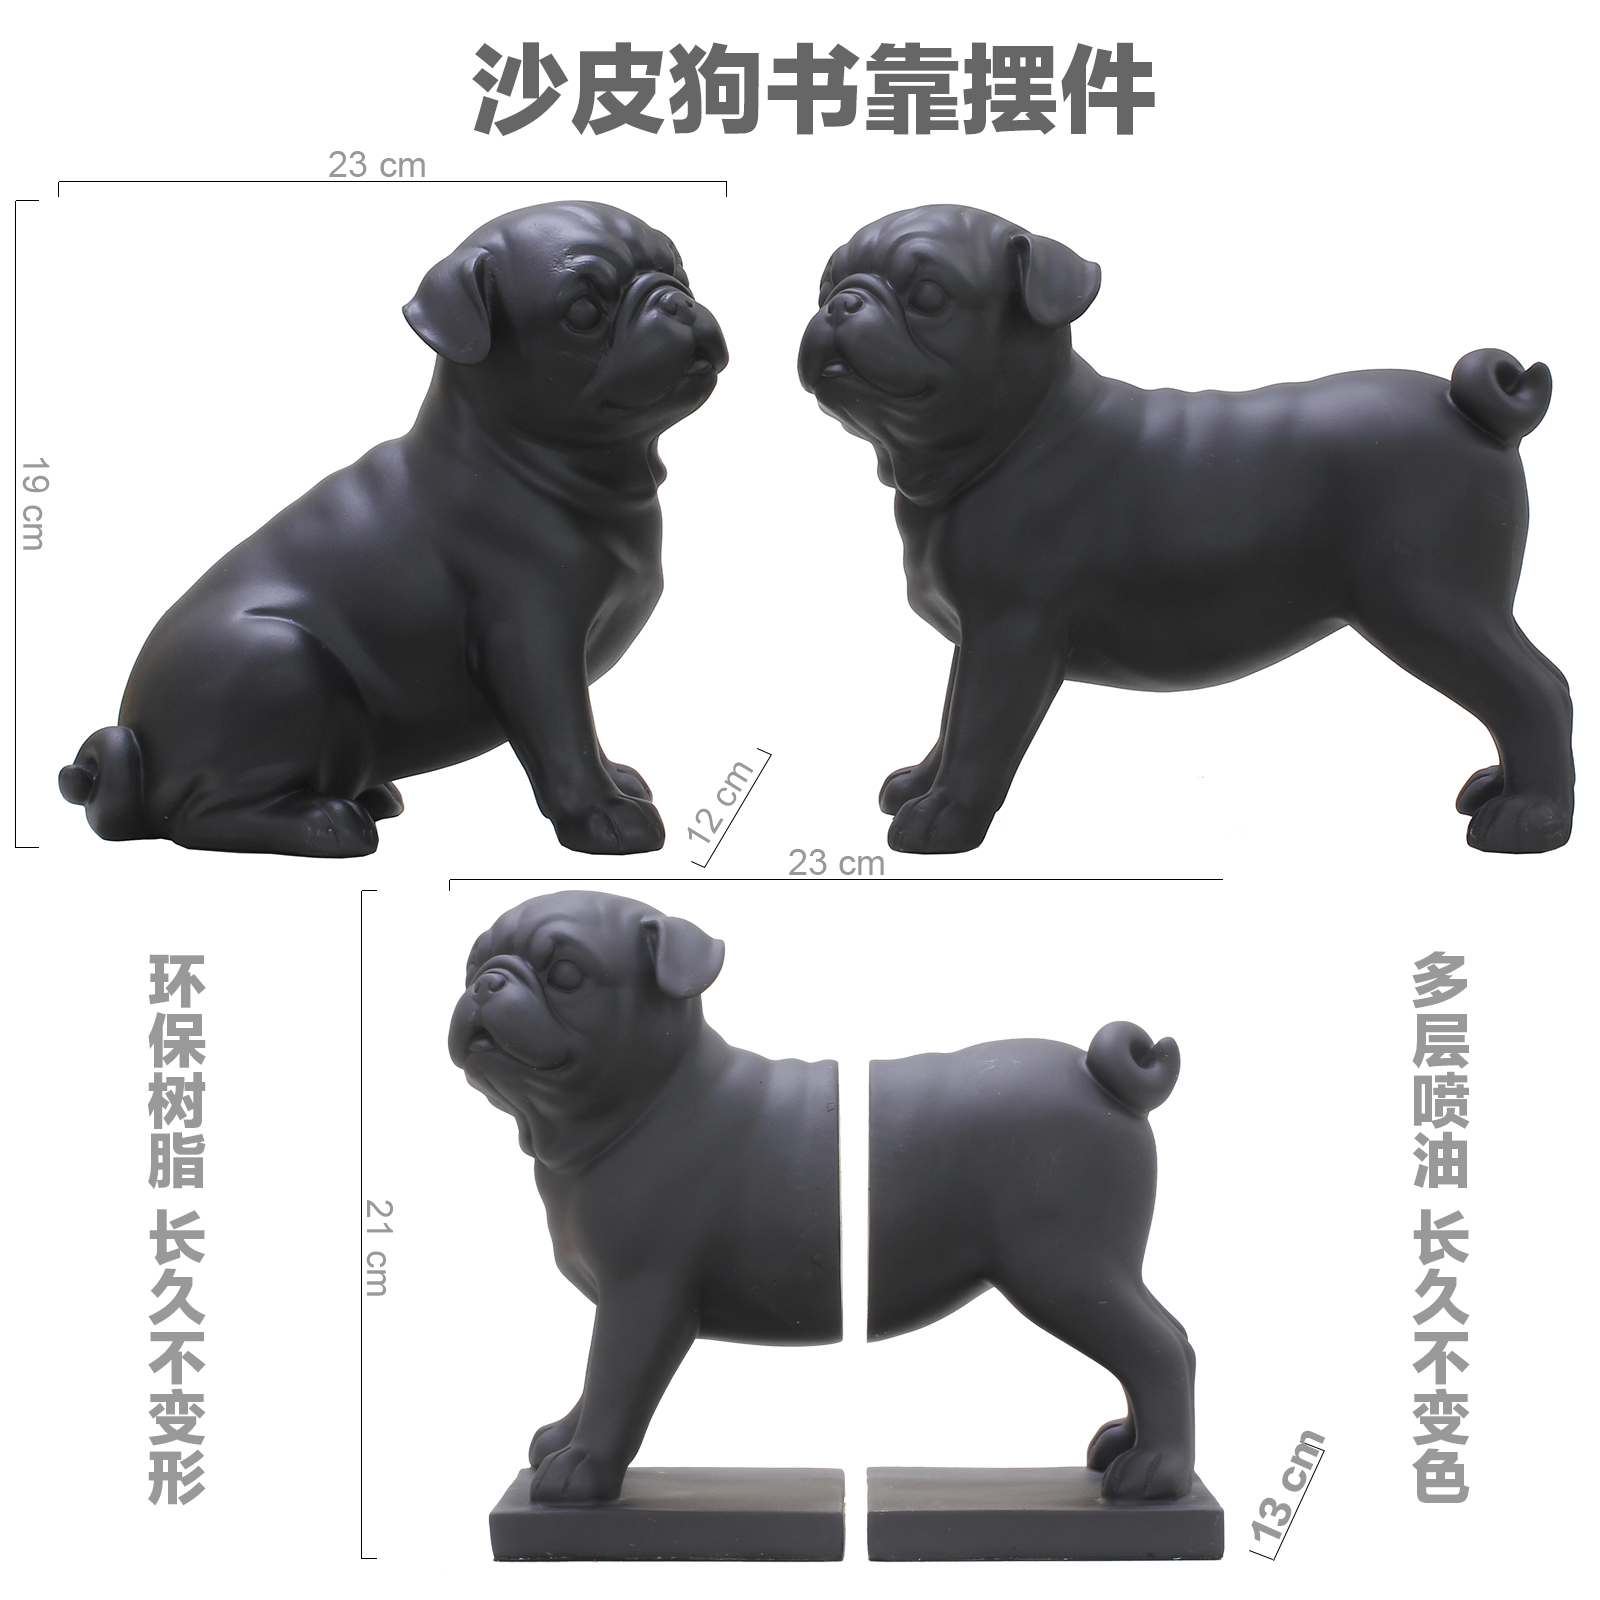 Black Sanddog Ornaments Cute Dog Ornaments Living Room Study Decorations Book Shelves Exquisite Gifts - 3